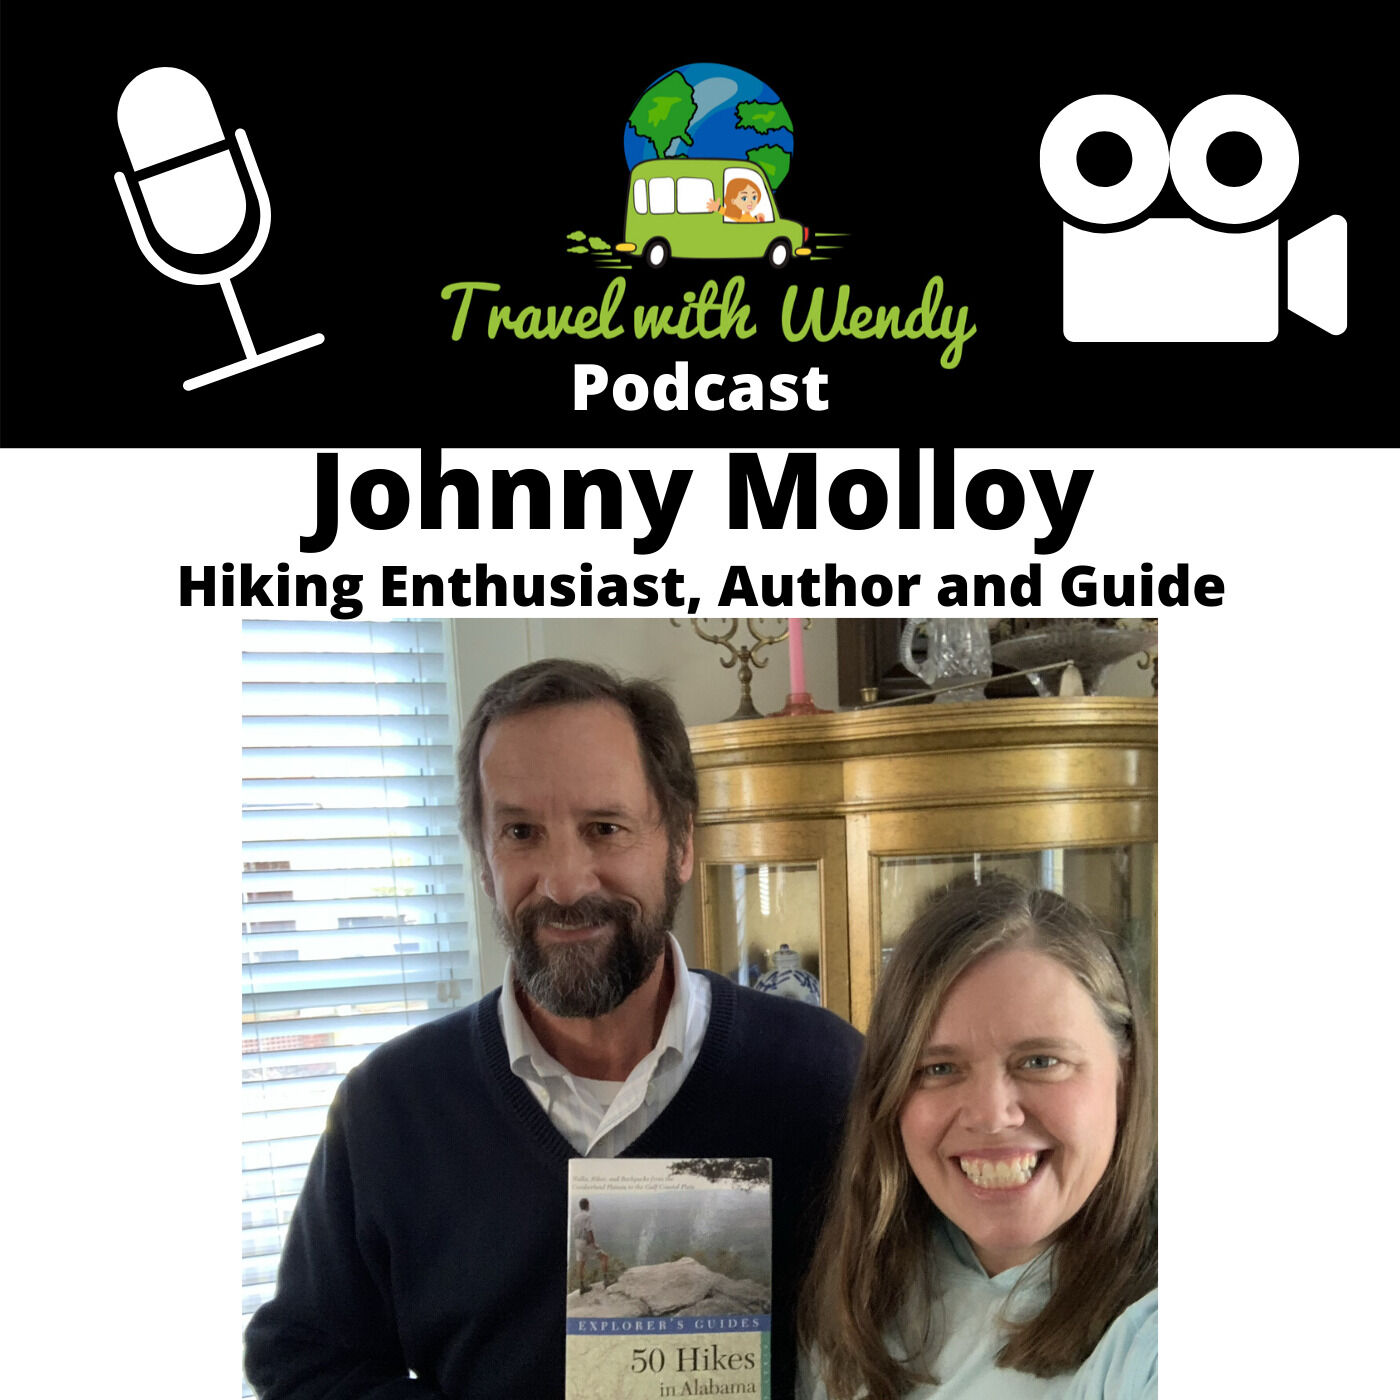 #13 Outdoor Writer & Hiking Guide  - Johnny Molloy